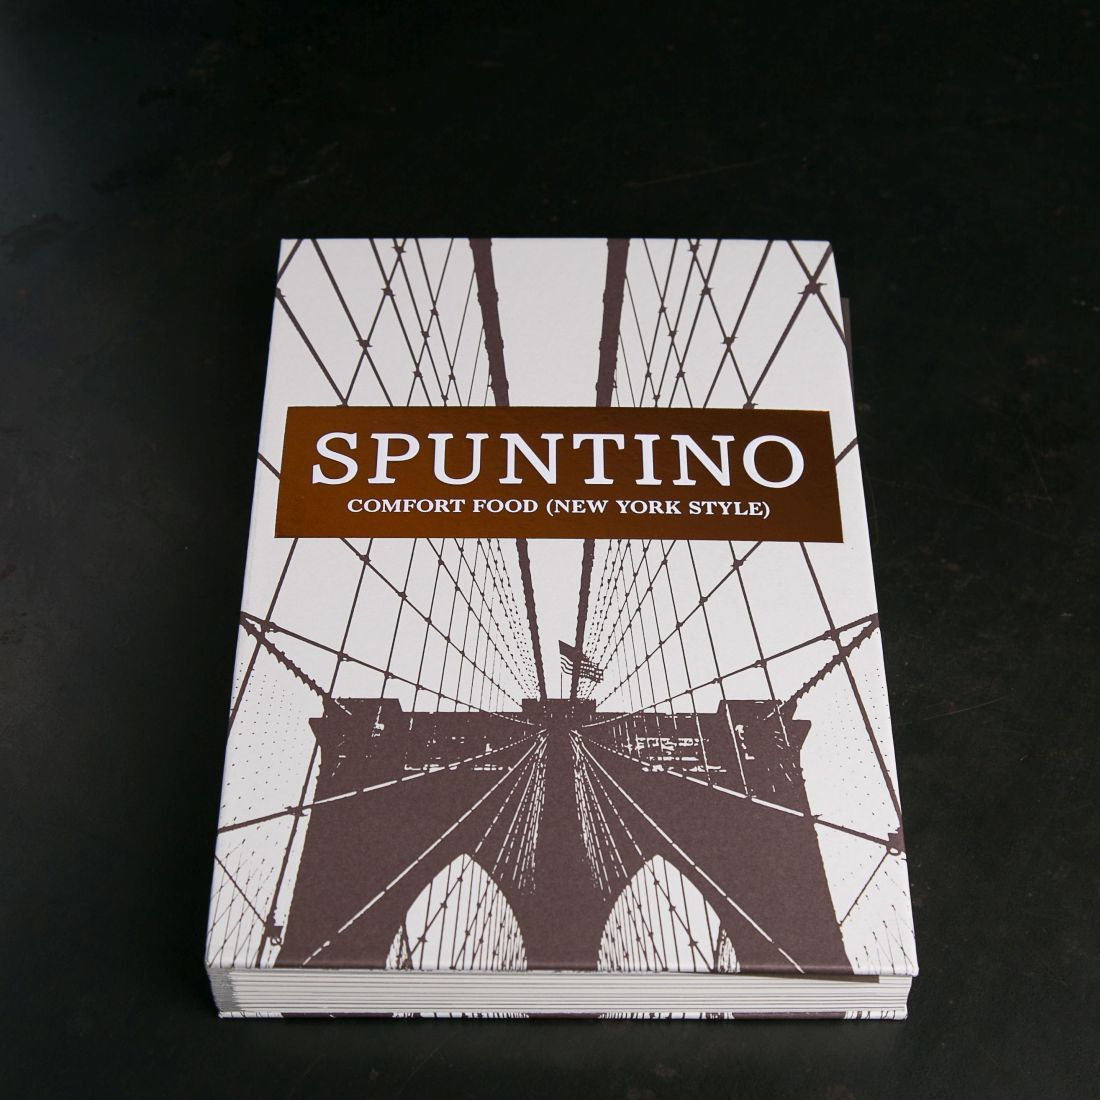 (SPUNTINO - Comfort food (New York Style